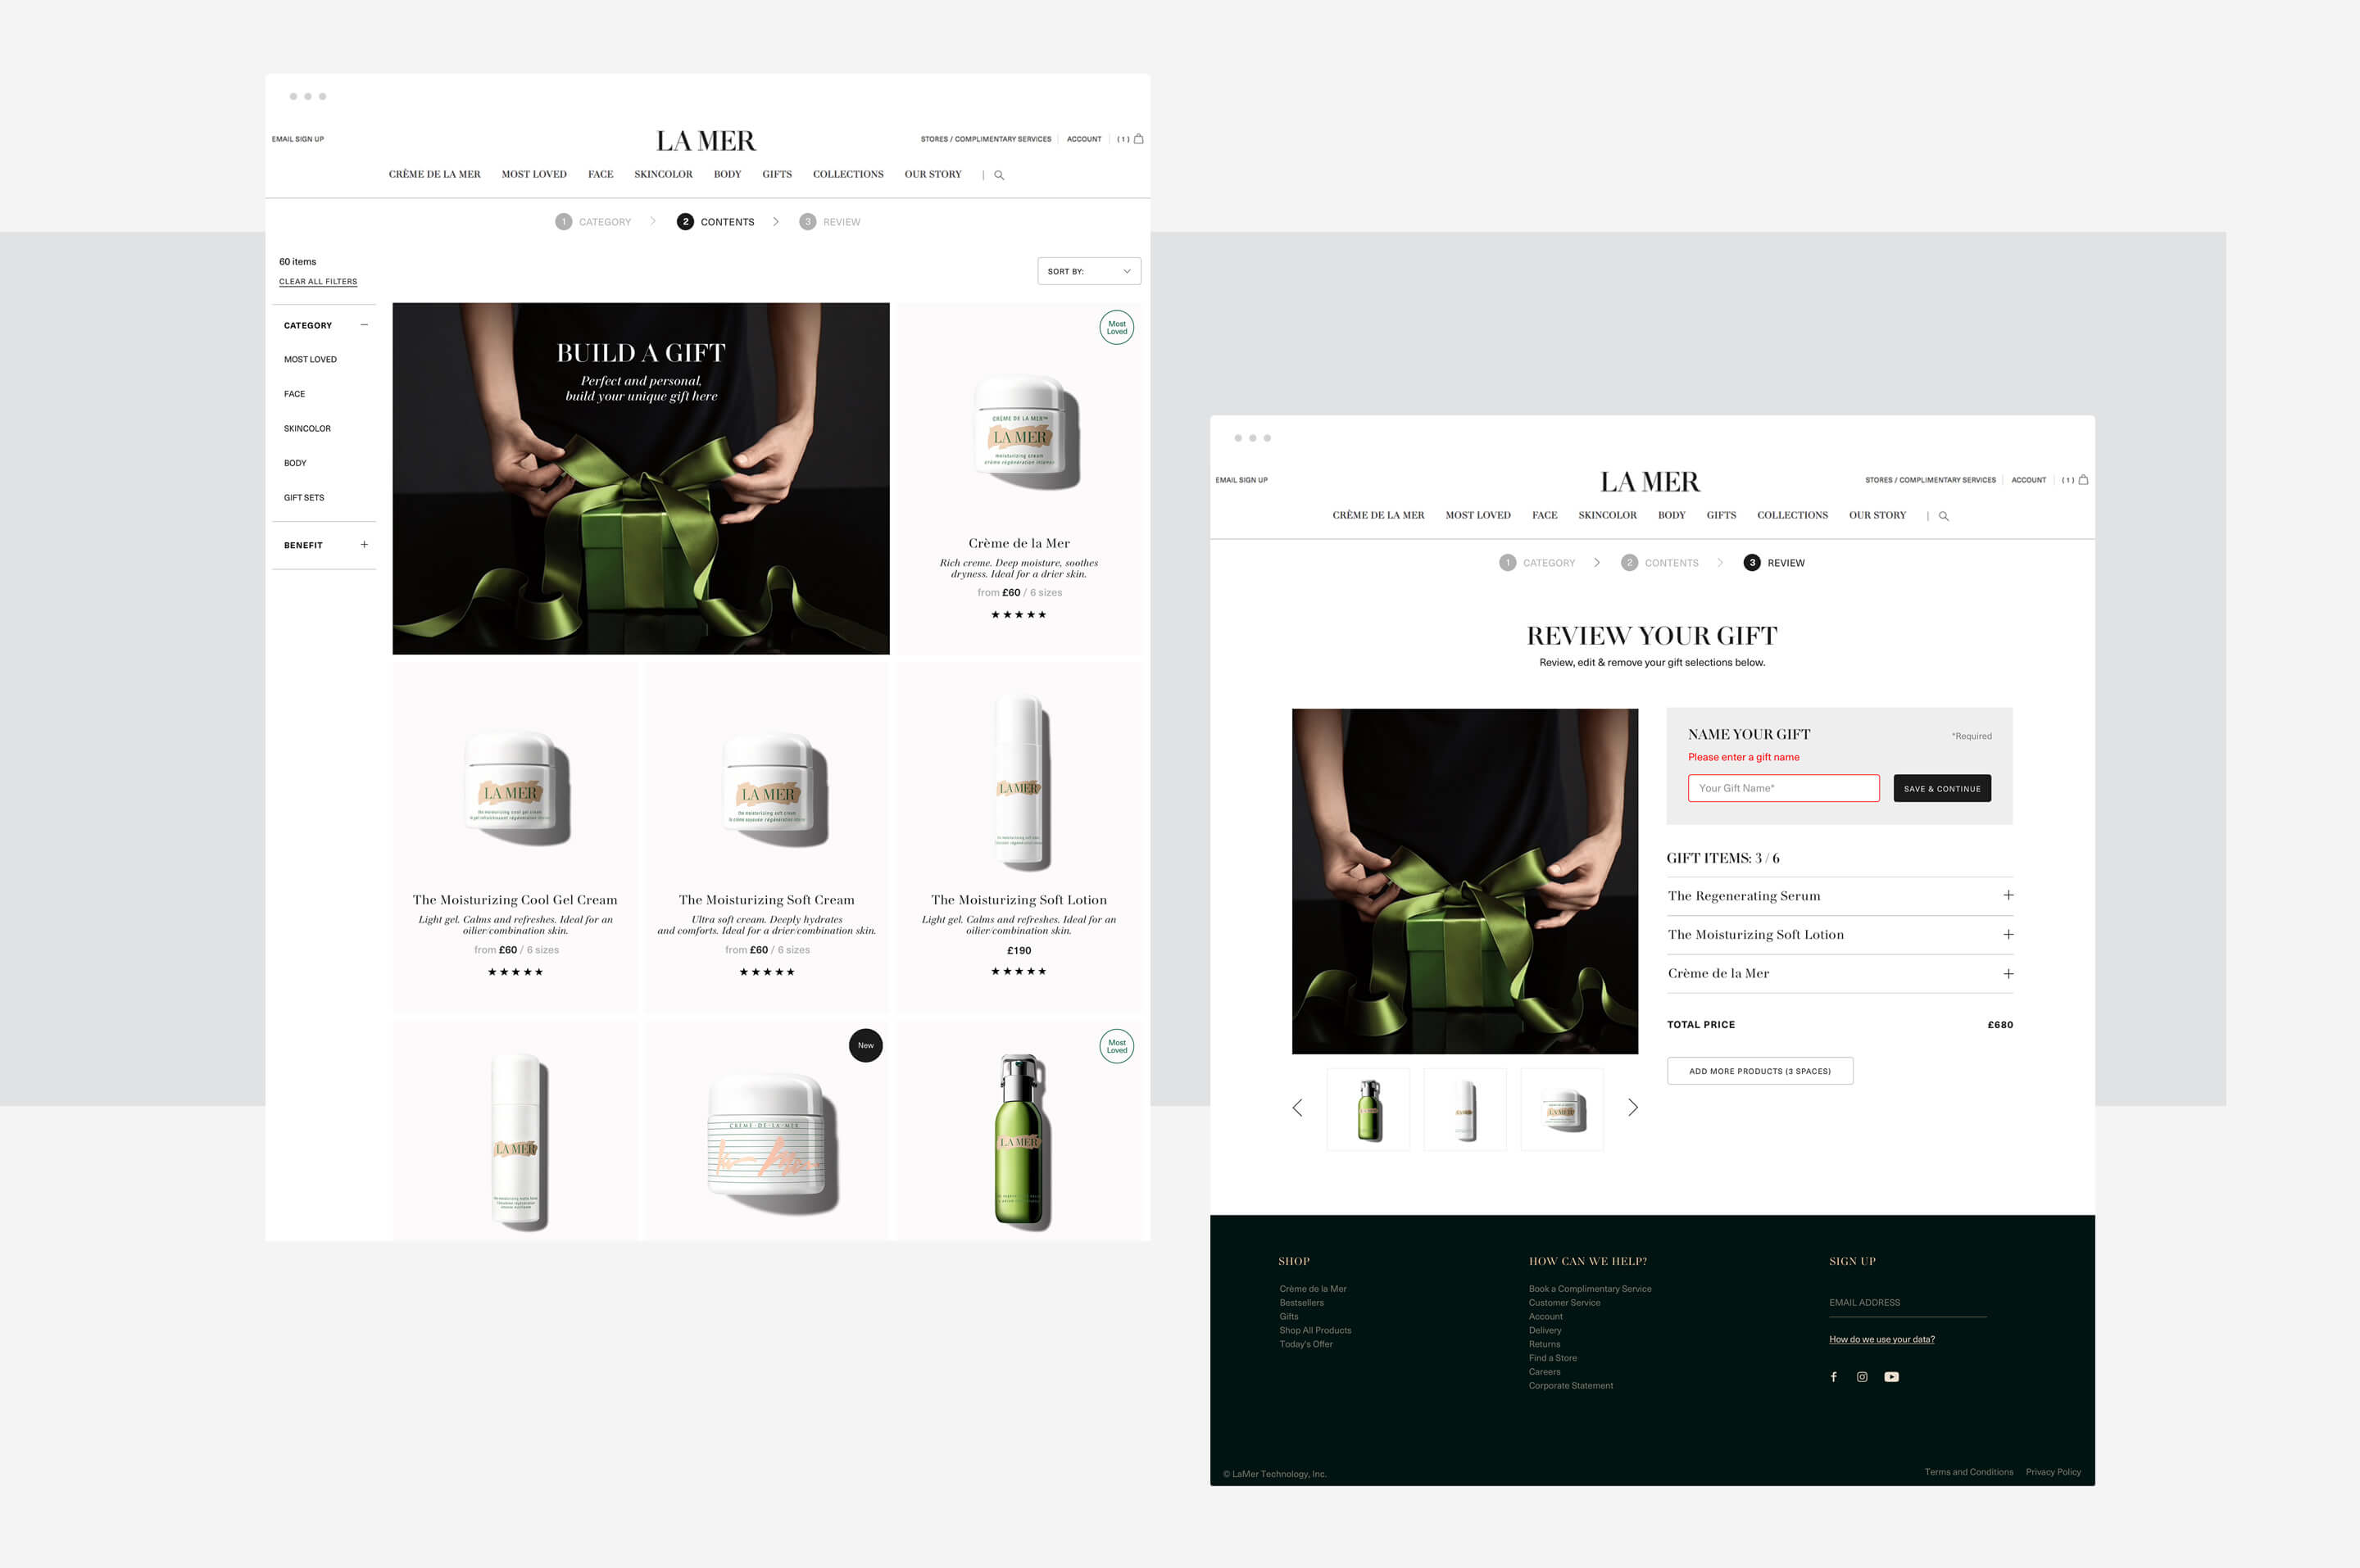 lamer-desktop-screens